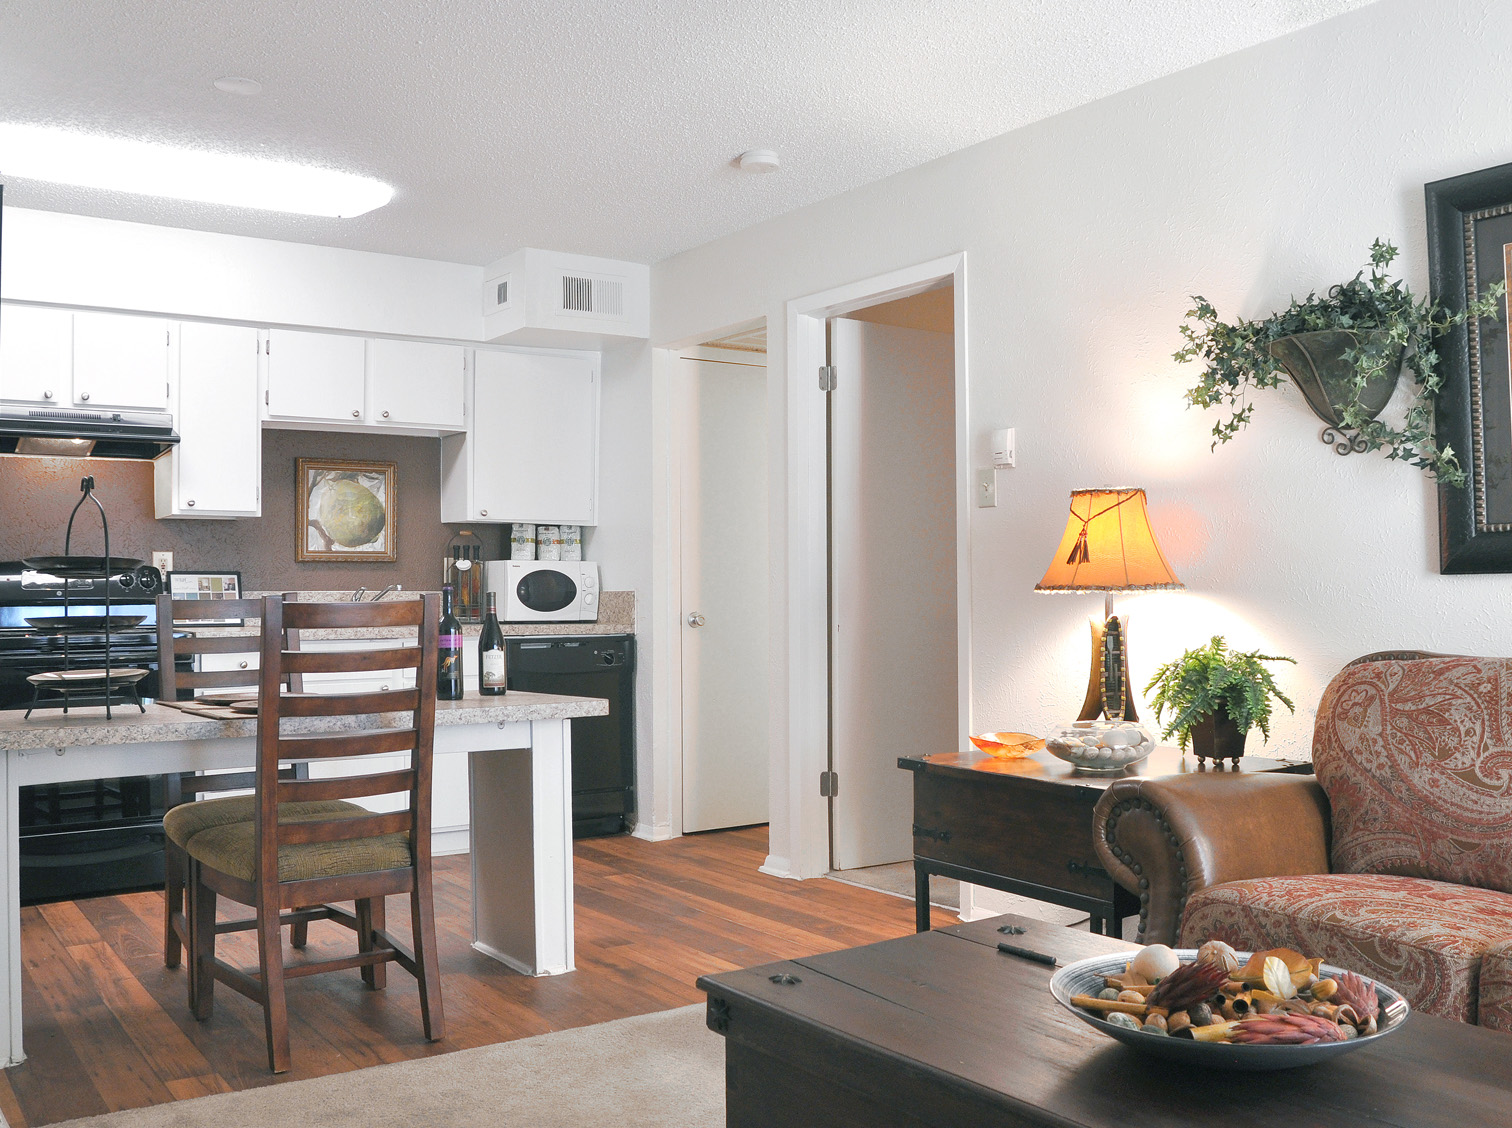 Kitchen, Dining & Living Room | Apartment Homes in Dallas, TX | Deerfield Apartments